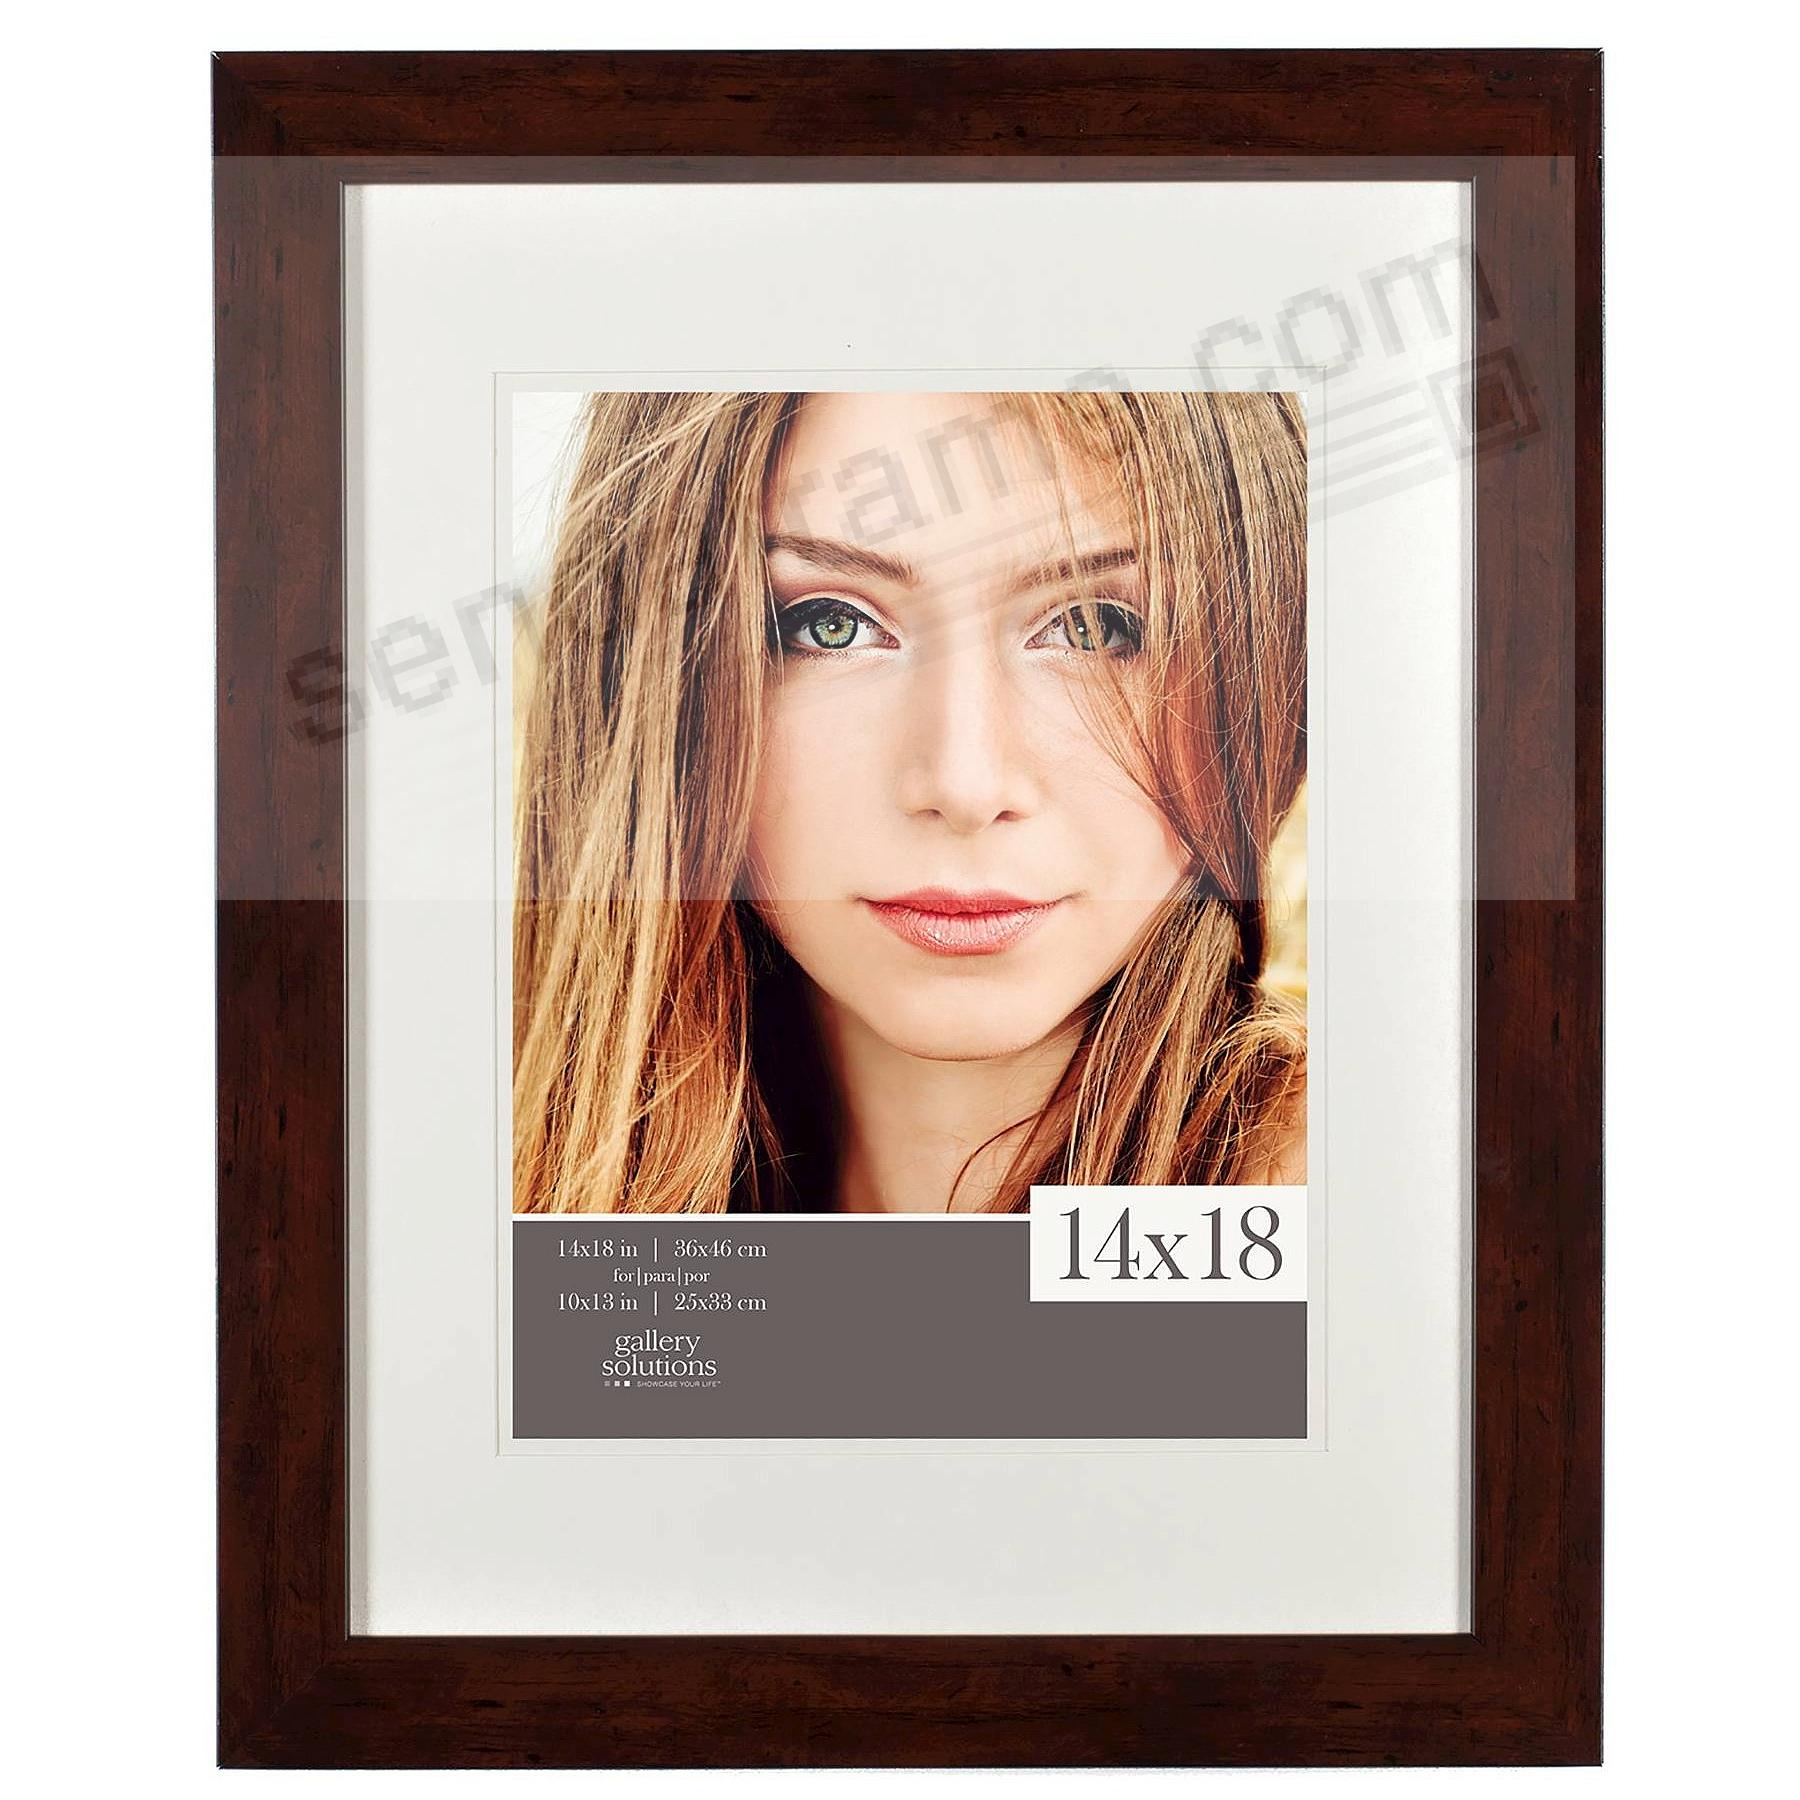 Walnut Wood Wall Frame matted 14x18/10x13 by Gallery Solutions™